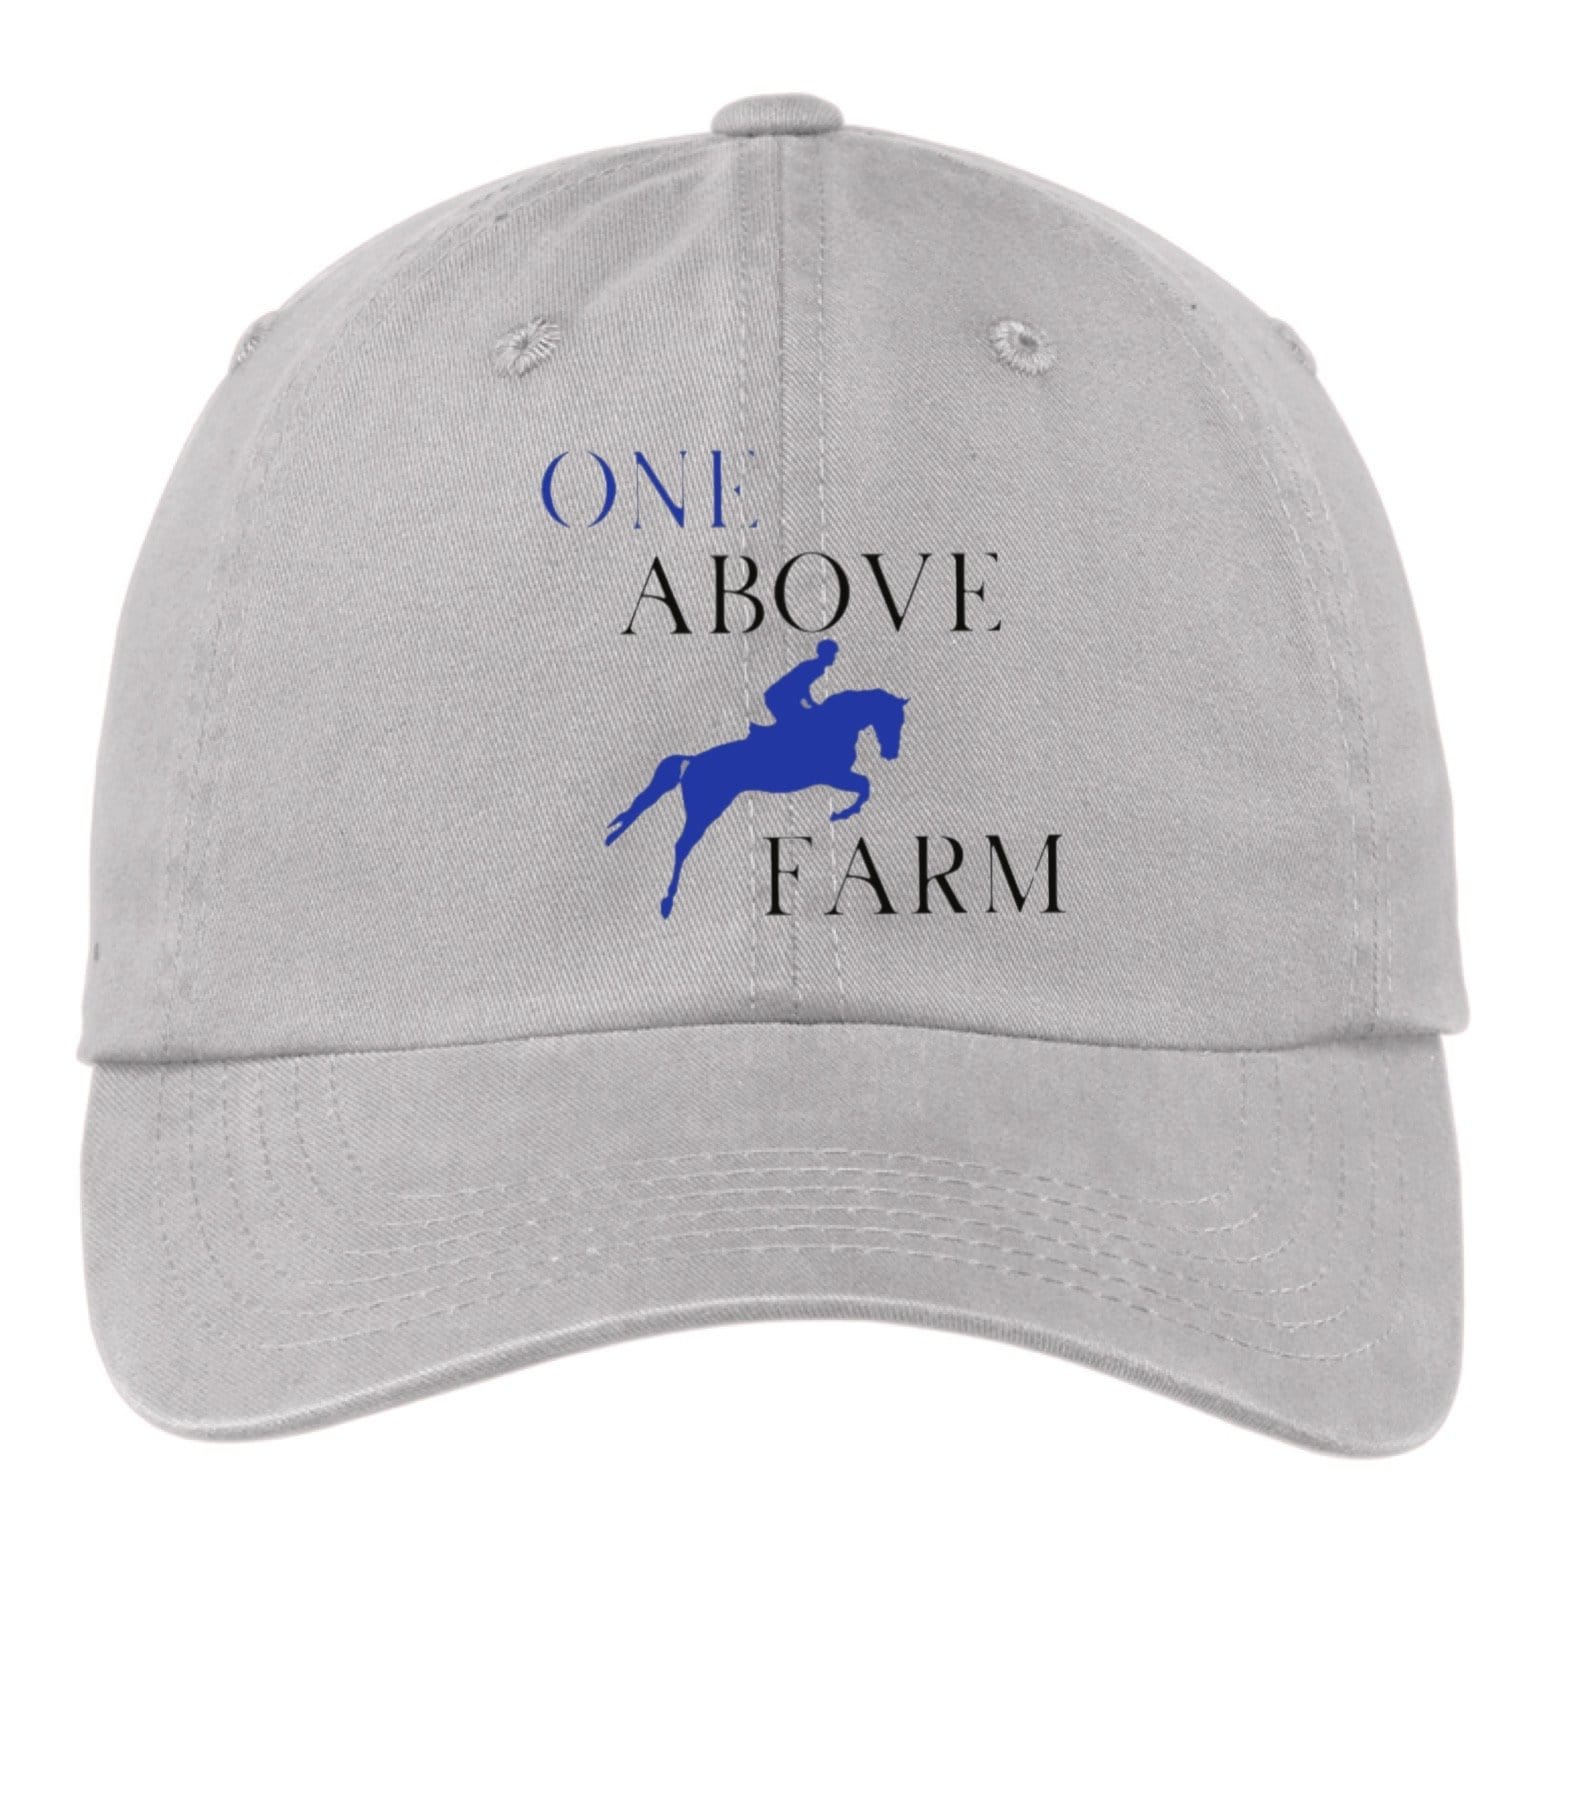 Equestrian Team Apparel Custom Team Shirts One Above Farm Baseball Caps equestrian team apparel online tack store mobile tack store custom farm apparel custom show stable clothing equestrian lifestyle horse show clothing riding clothes horses equestrian tack store